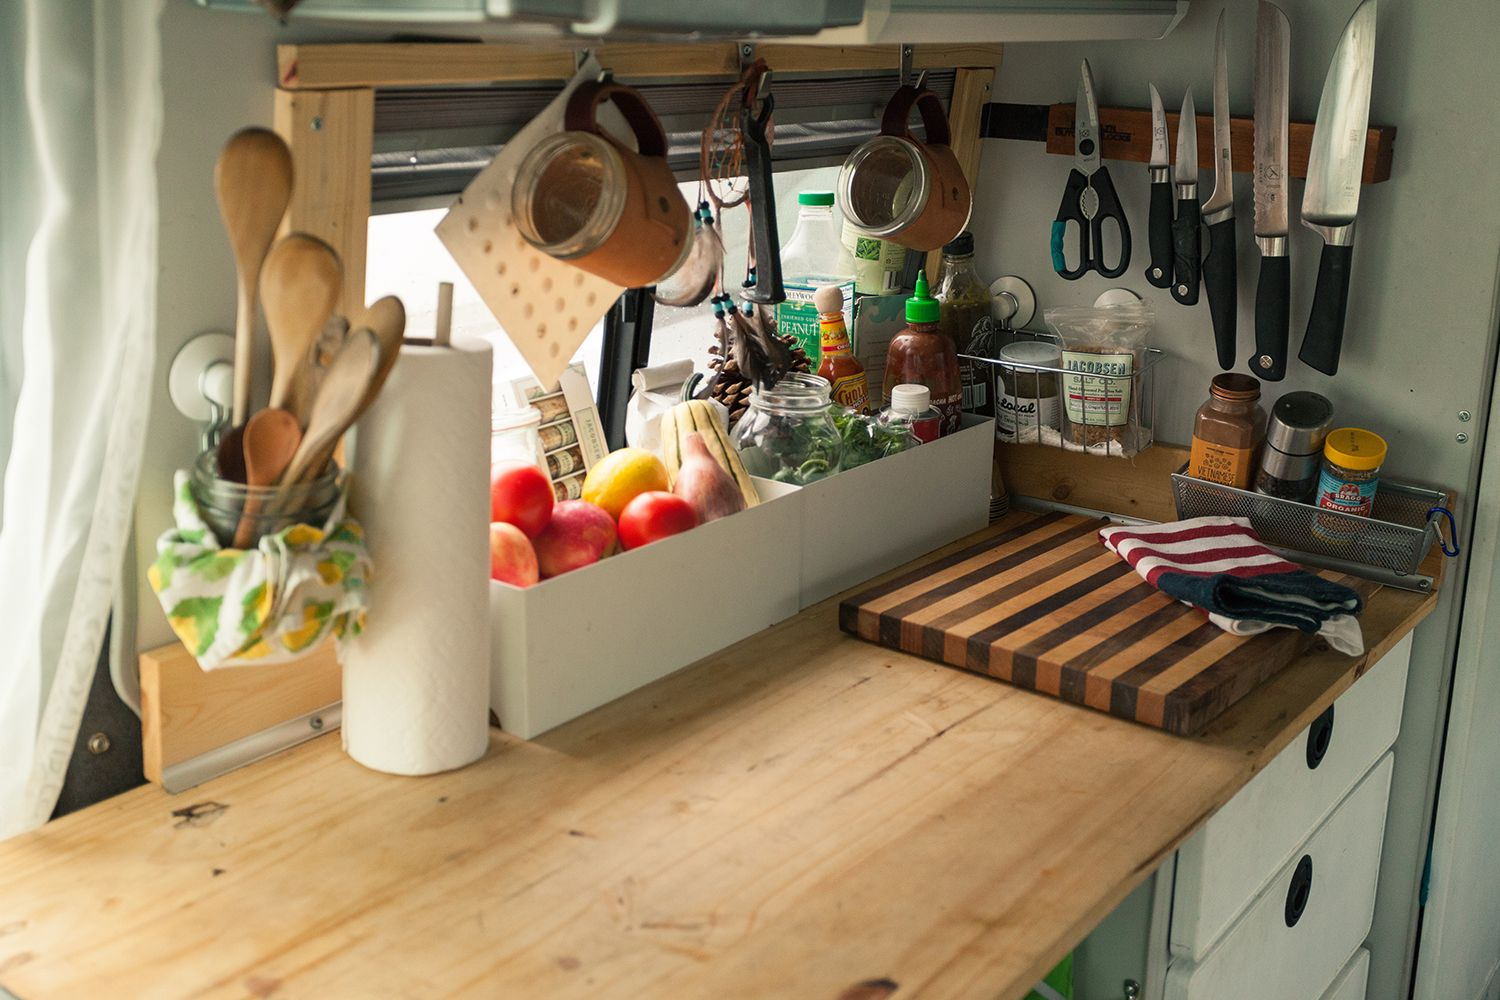 Cooking in Small Spaces | Van life